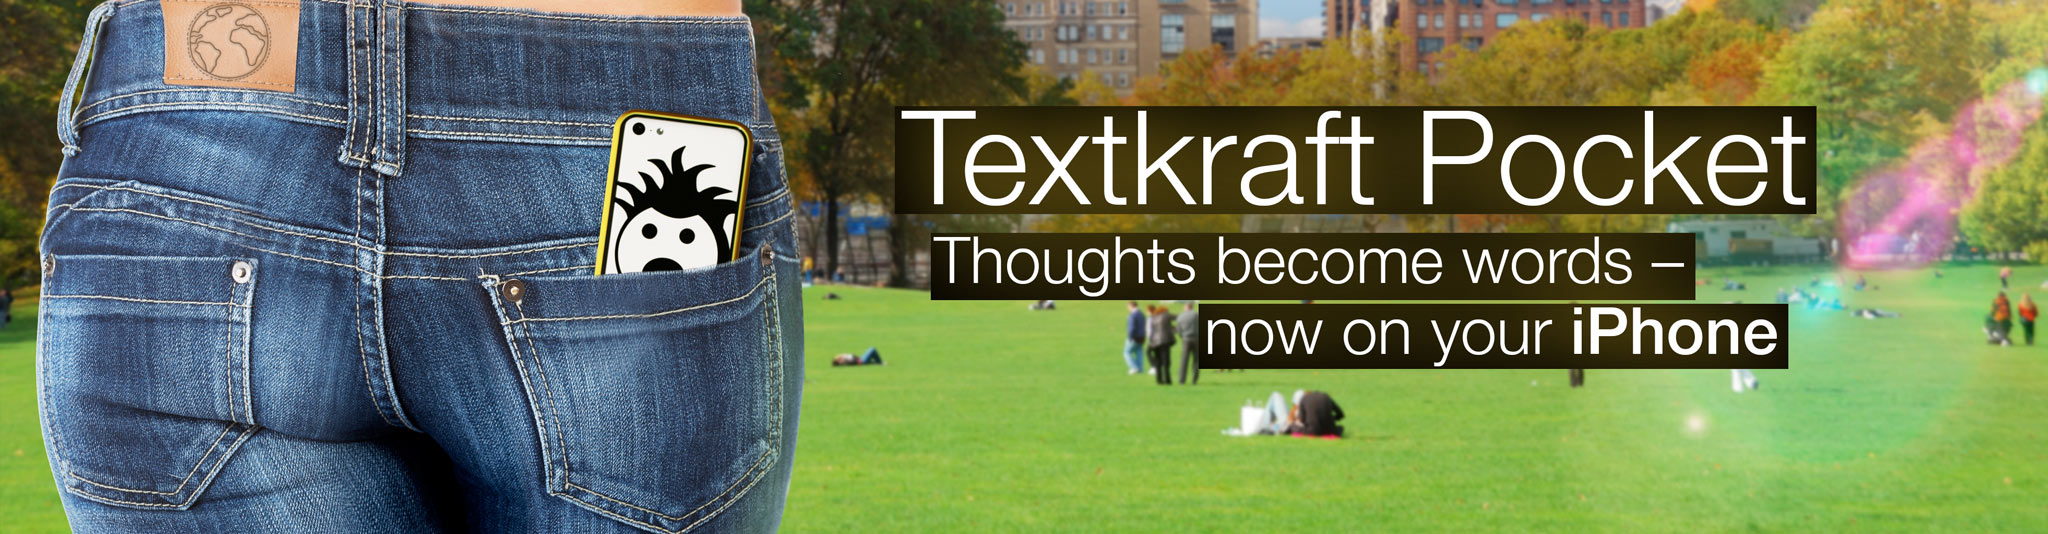 Textkraft Pocket for the iPhone.